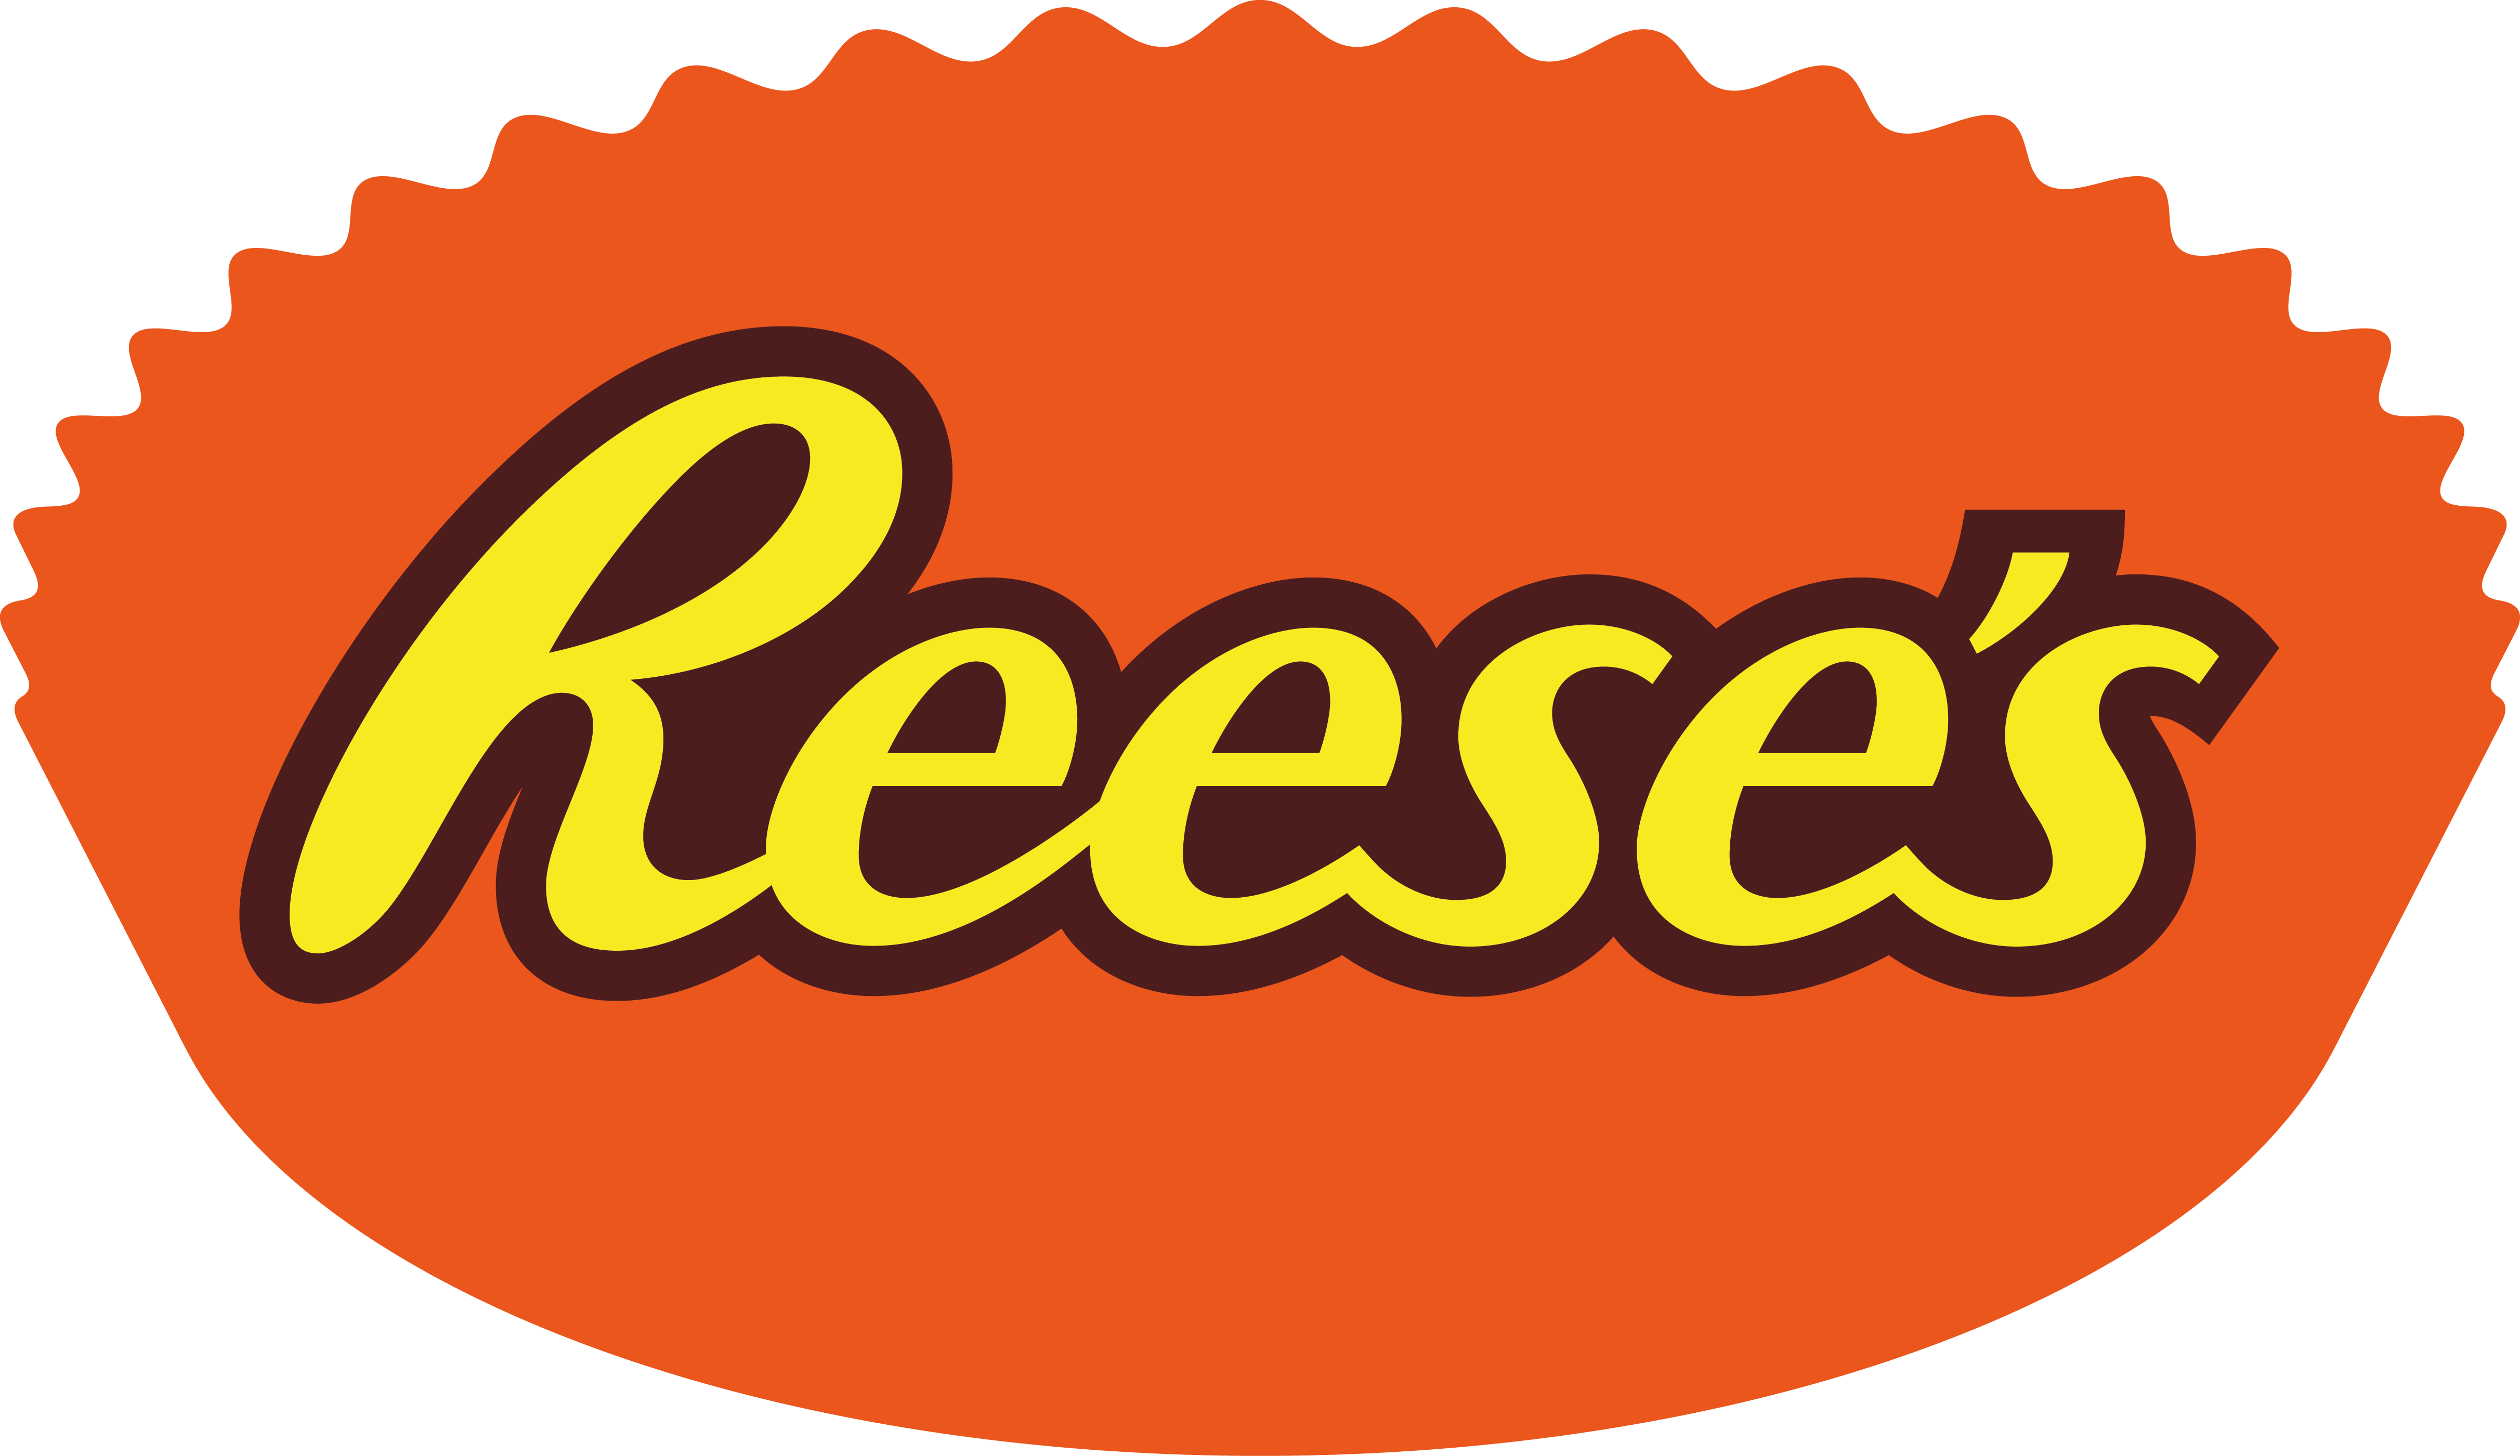 Reeses logos . Clipart candy reese's